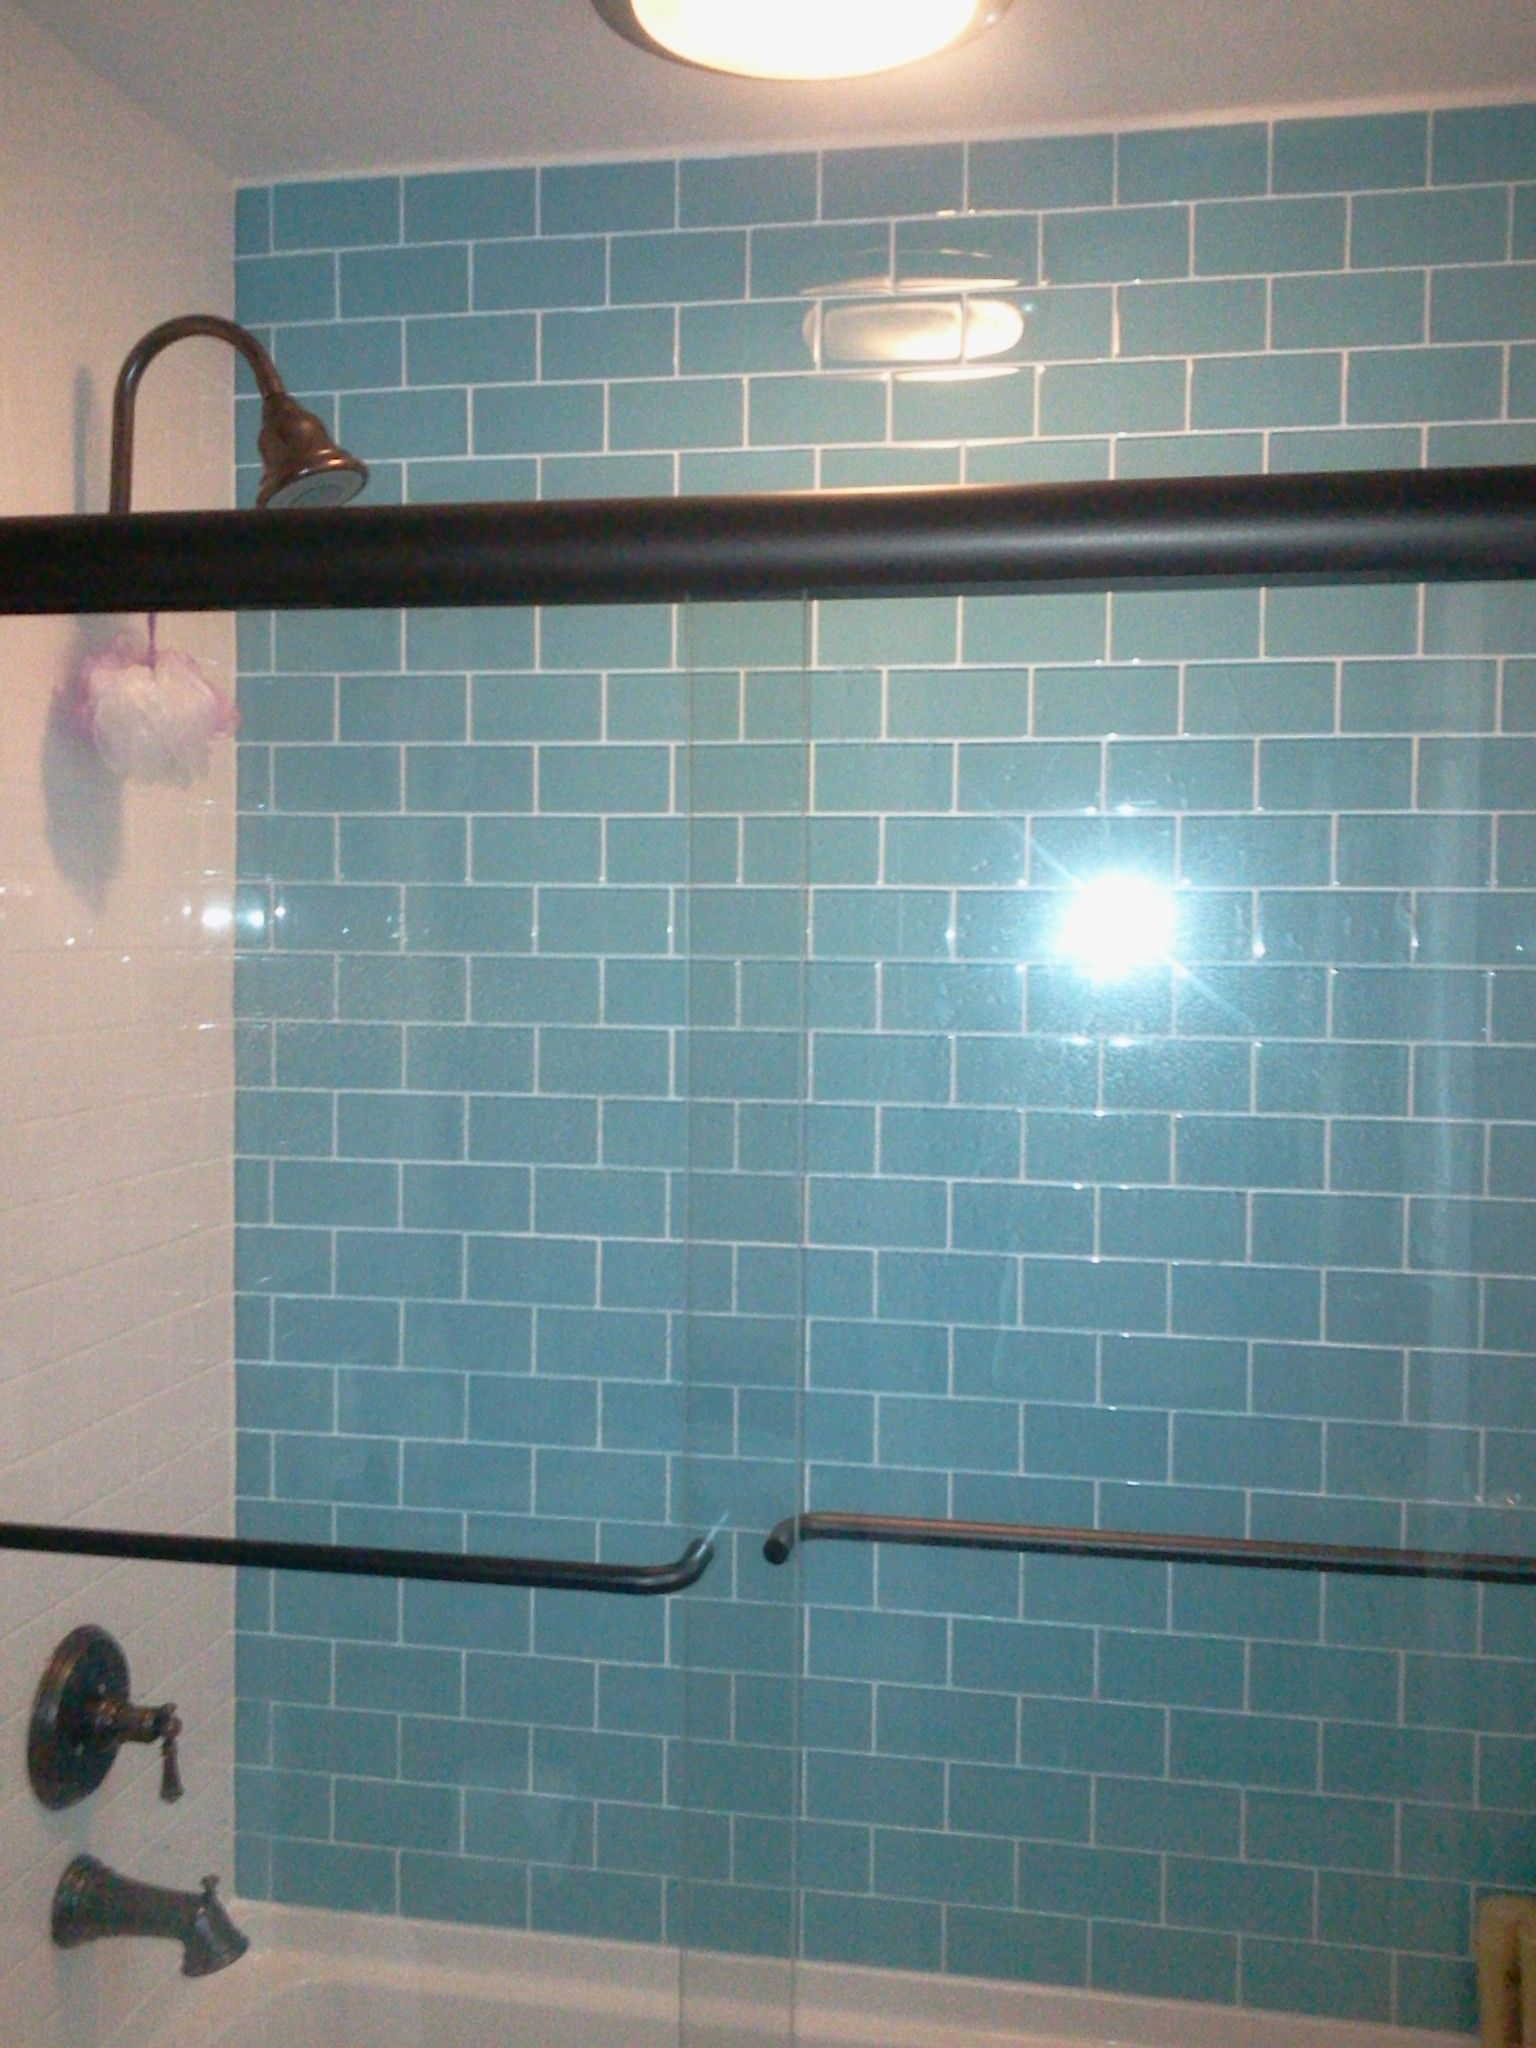 Bathroom Glass Subway Tile how to install glass tile backsplash in bathroom. silver glass